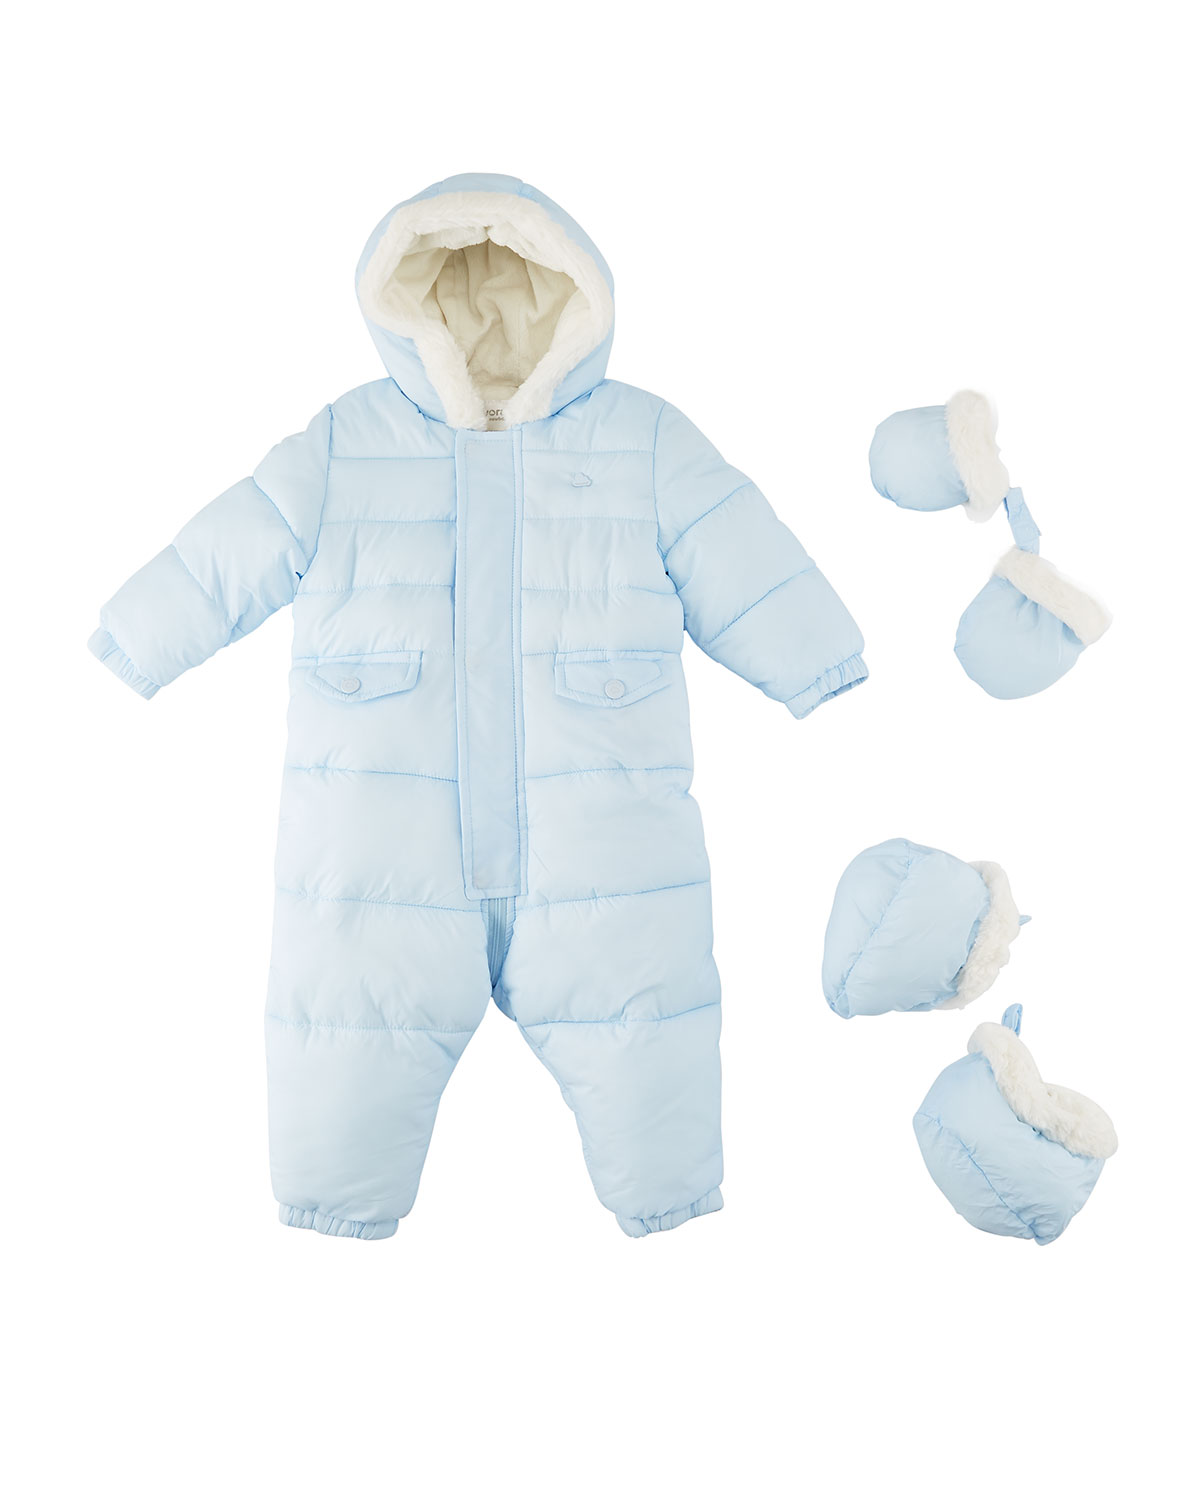 63a793db0 Mayoral Snowsuit with Faux-Fur Lining, 3-12M   Neiman Marcus